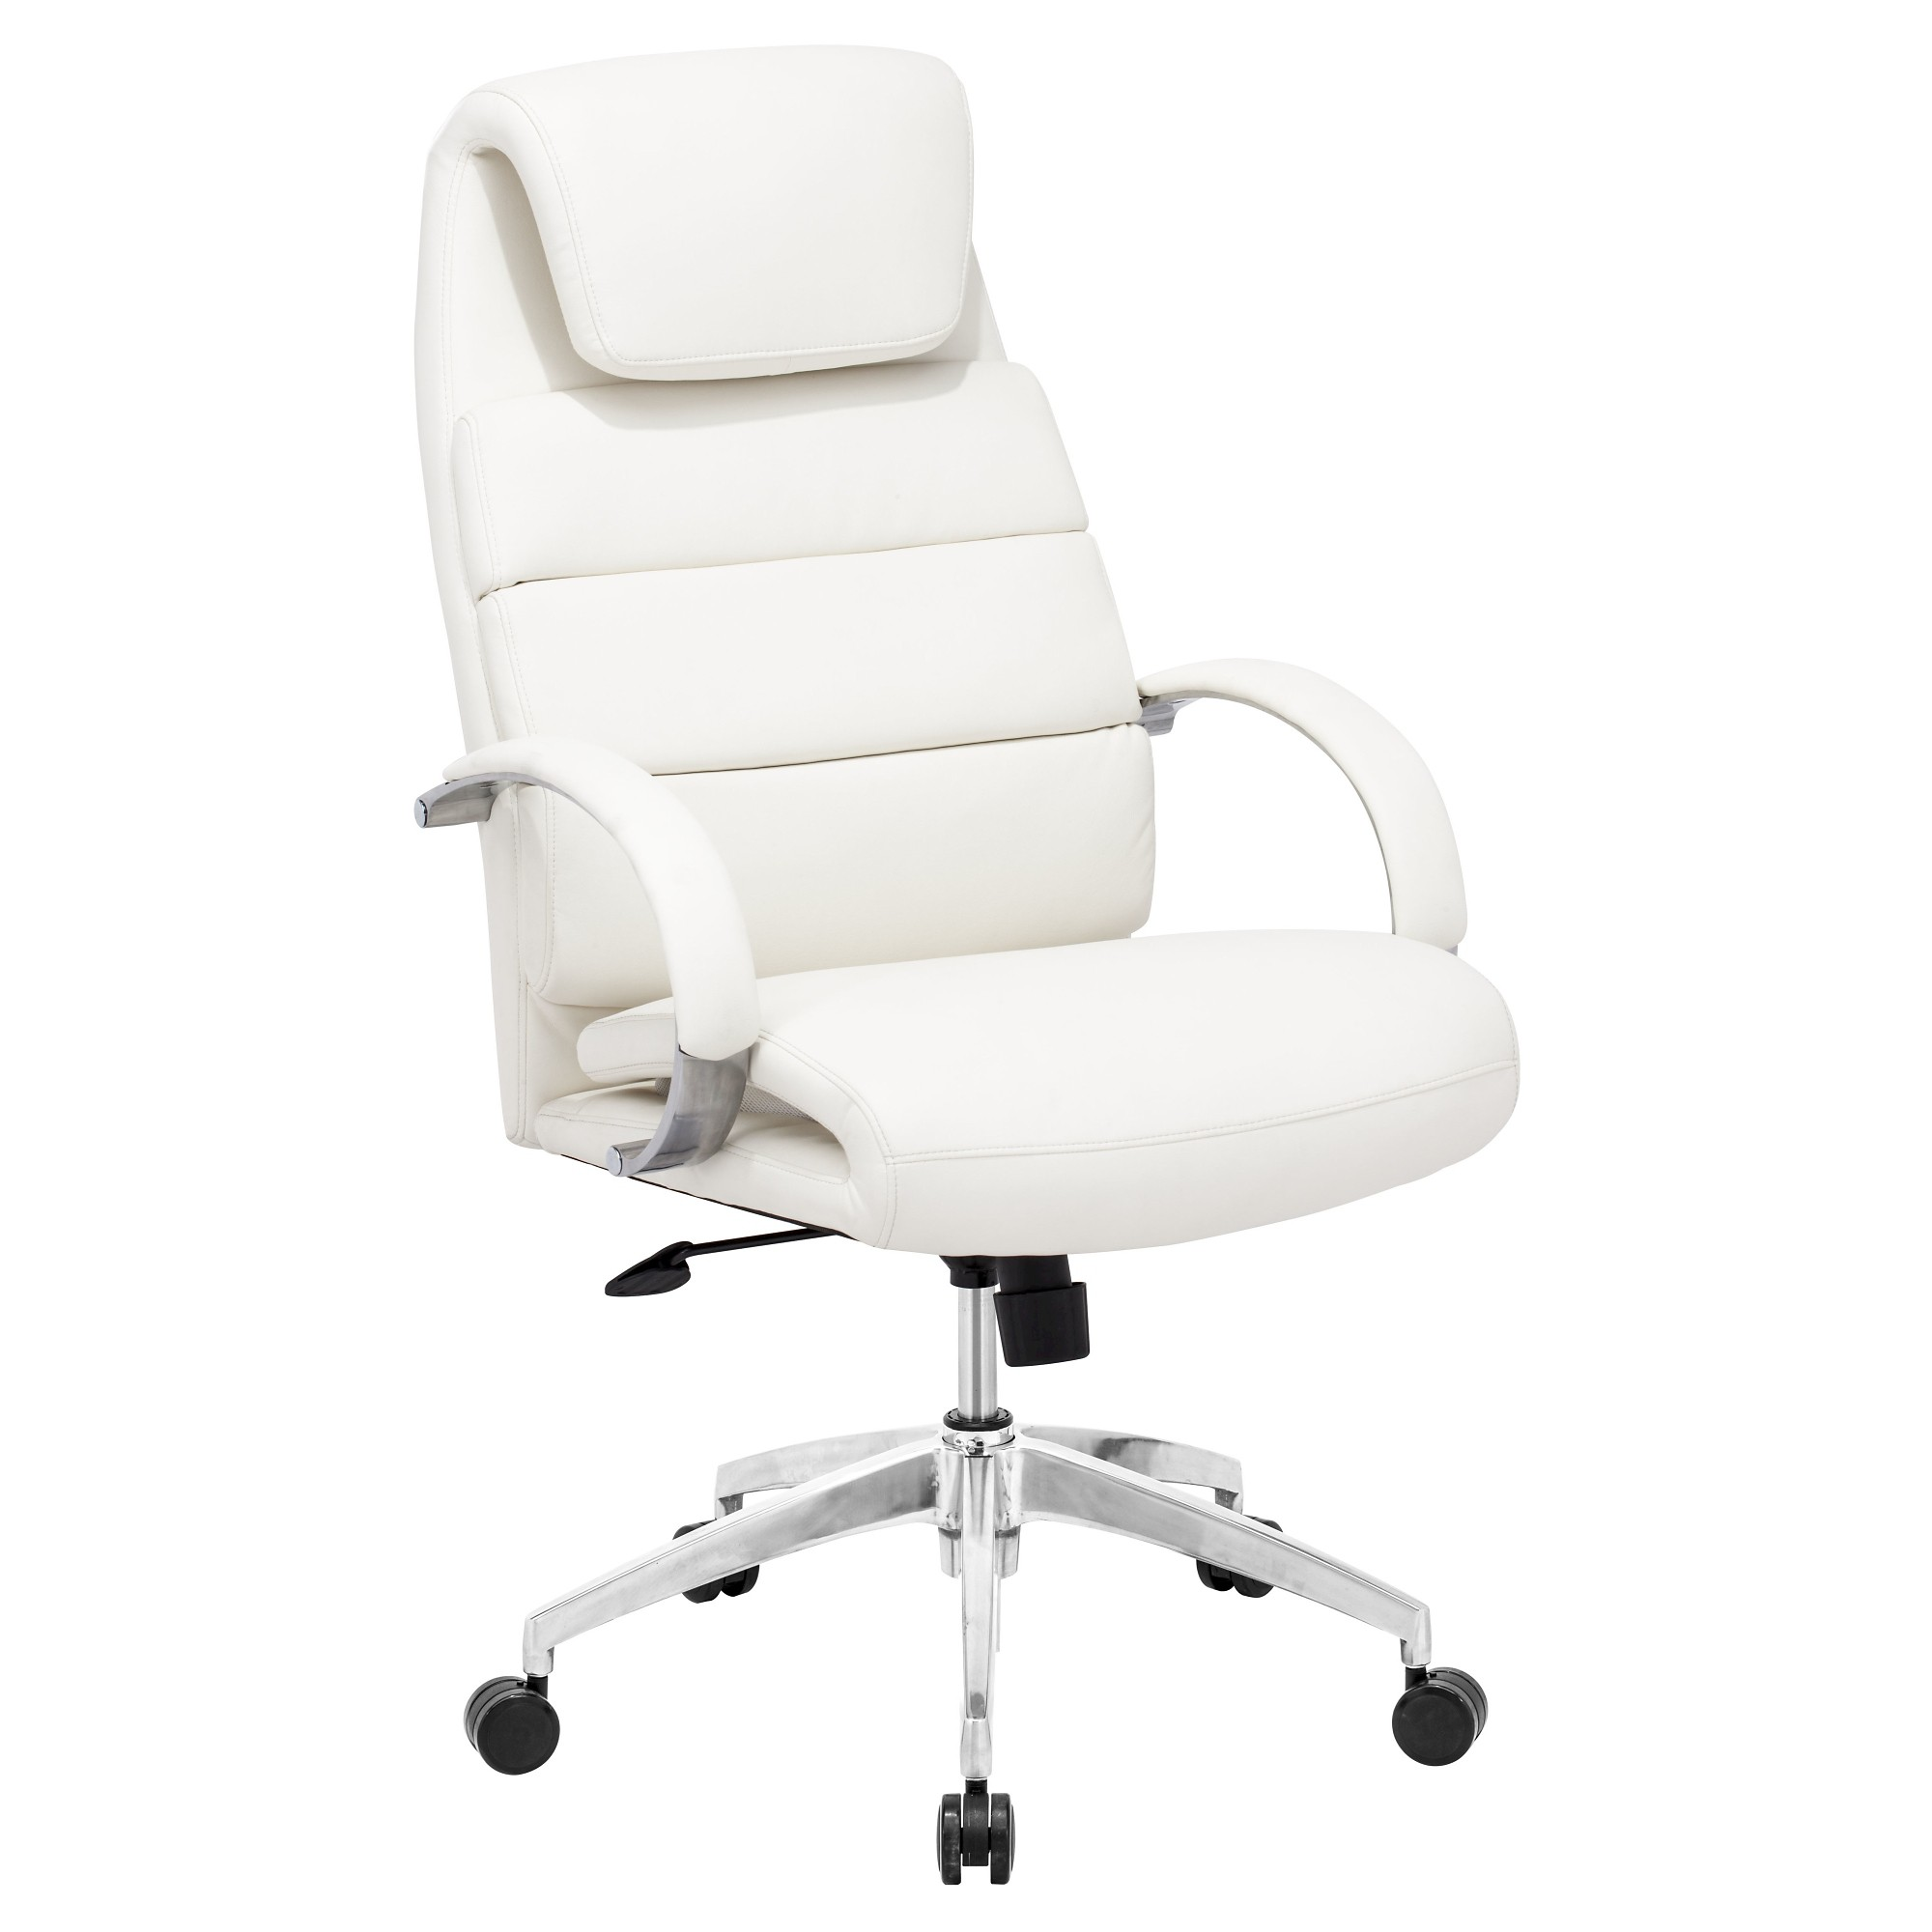 Adjustable upholstered ergonomic office chair white zm home